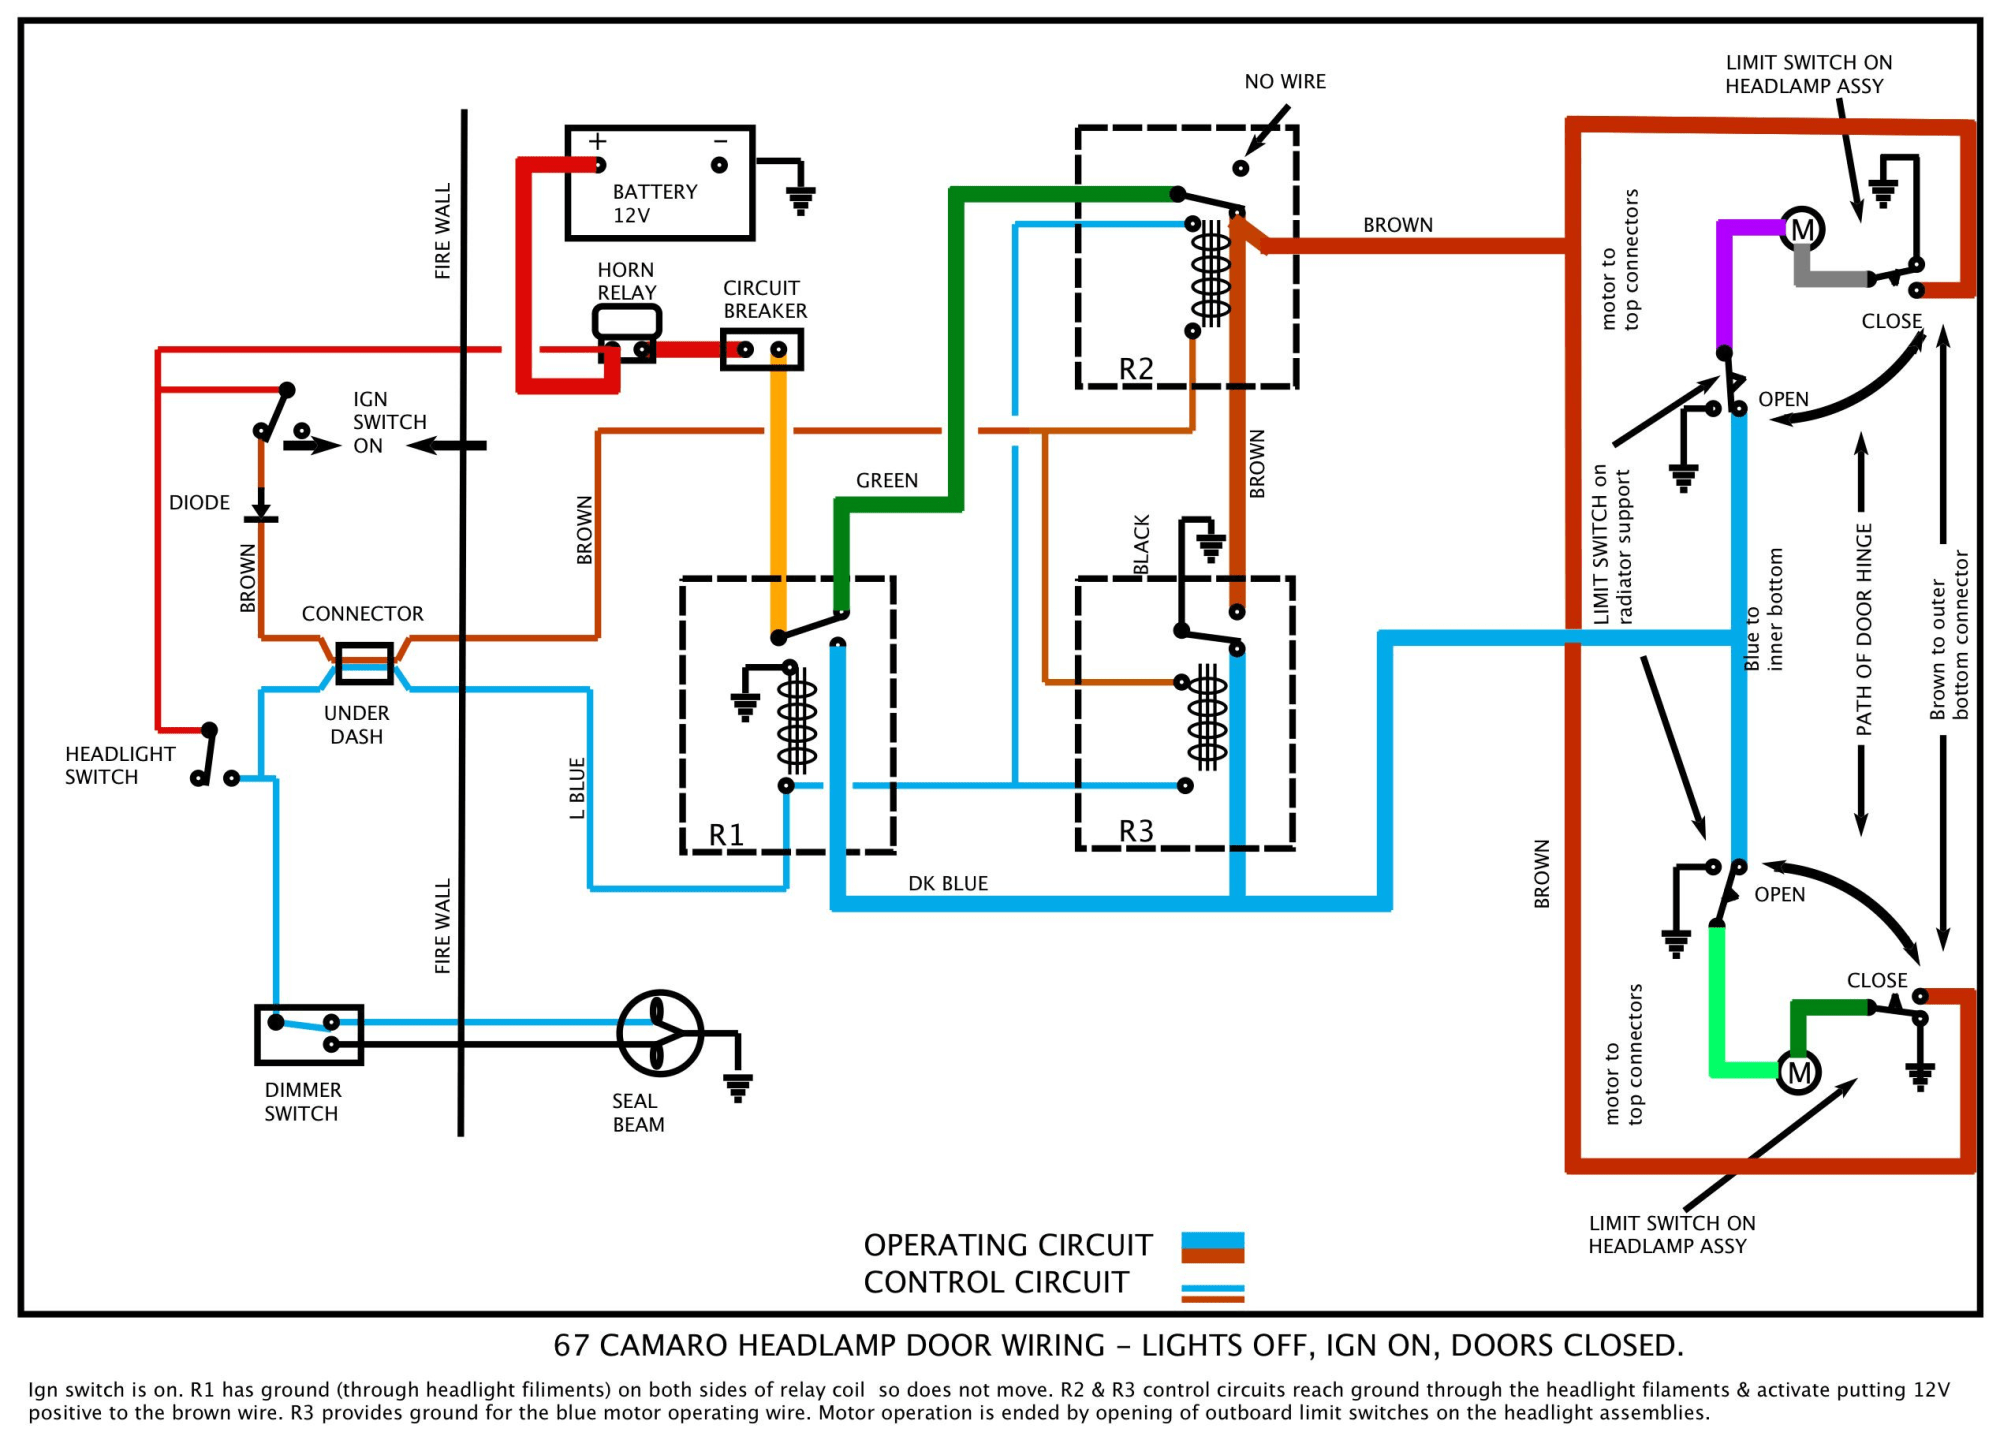 hight resolution of 1969 camaro headlight wiring diagram electrical wiring diagrams rh cytrus co 1968 camaro console gauges wiring